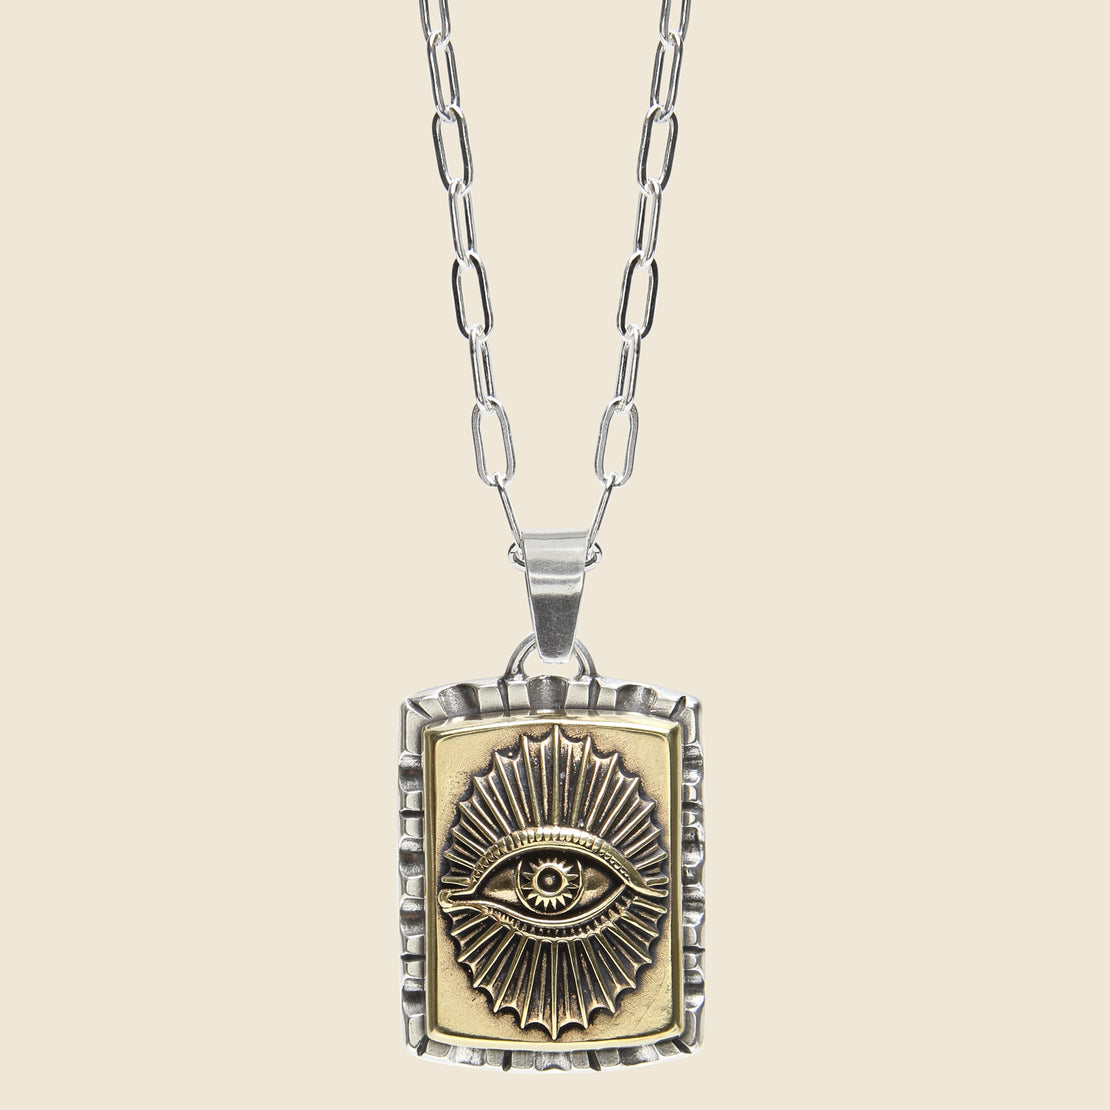 LHN Jewelry All Seeing Eye Souvenir Necklace - Silver/Brass